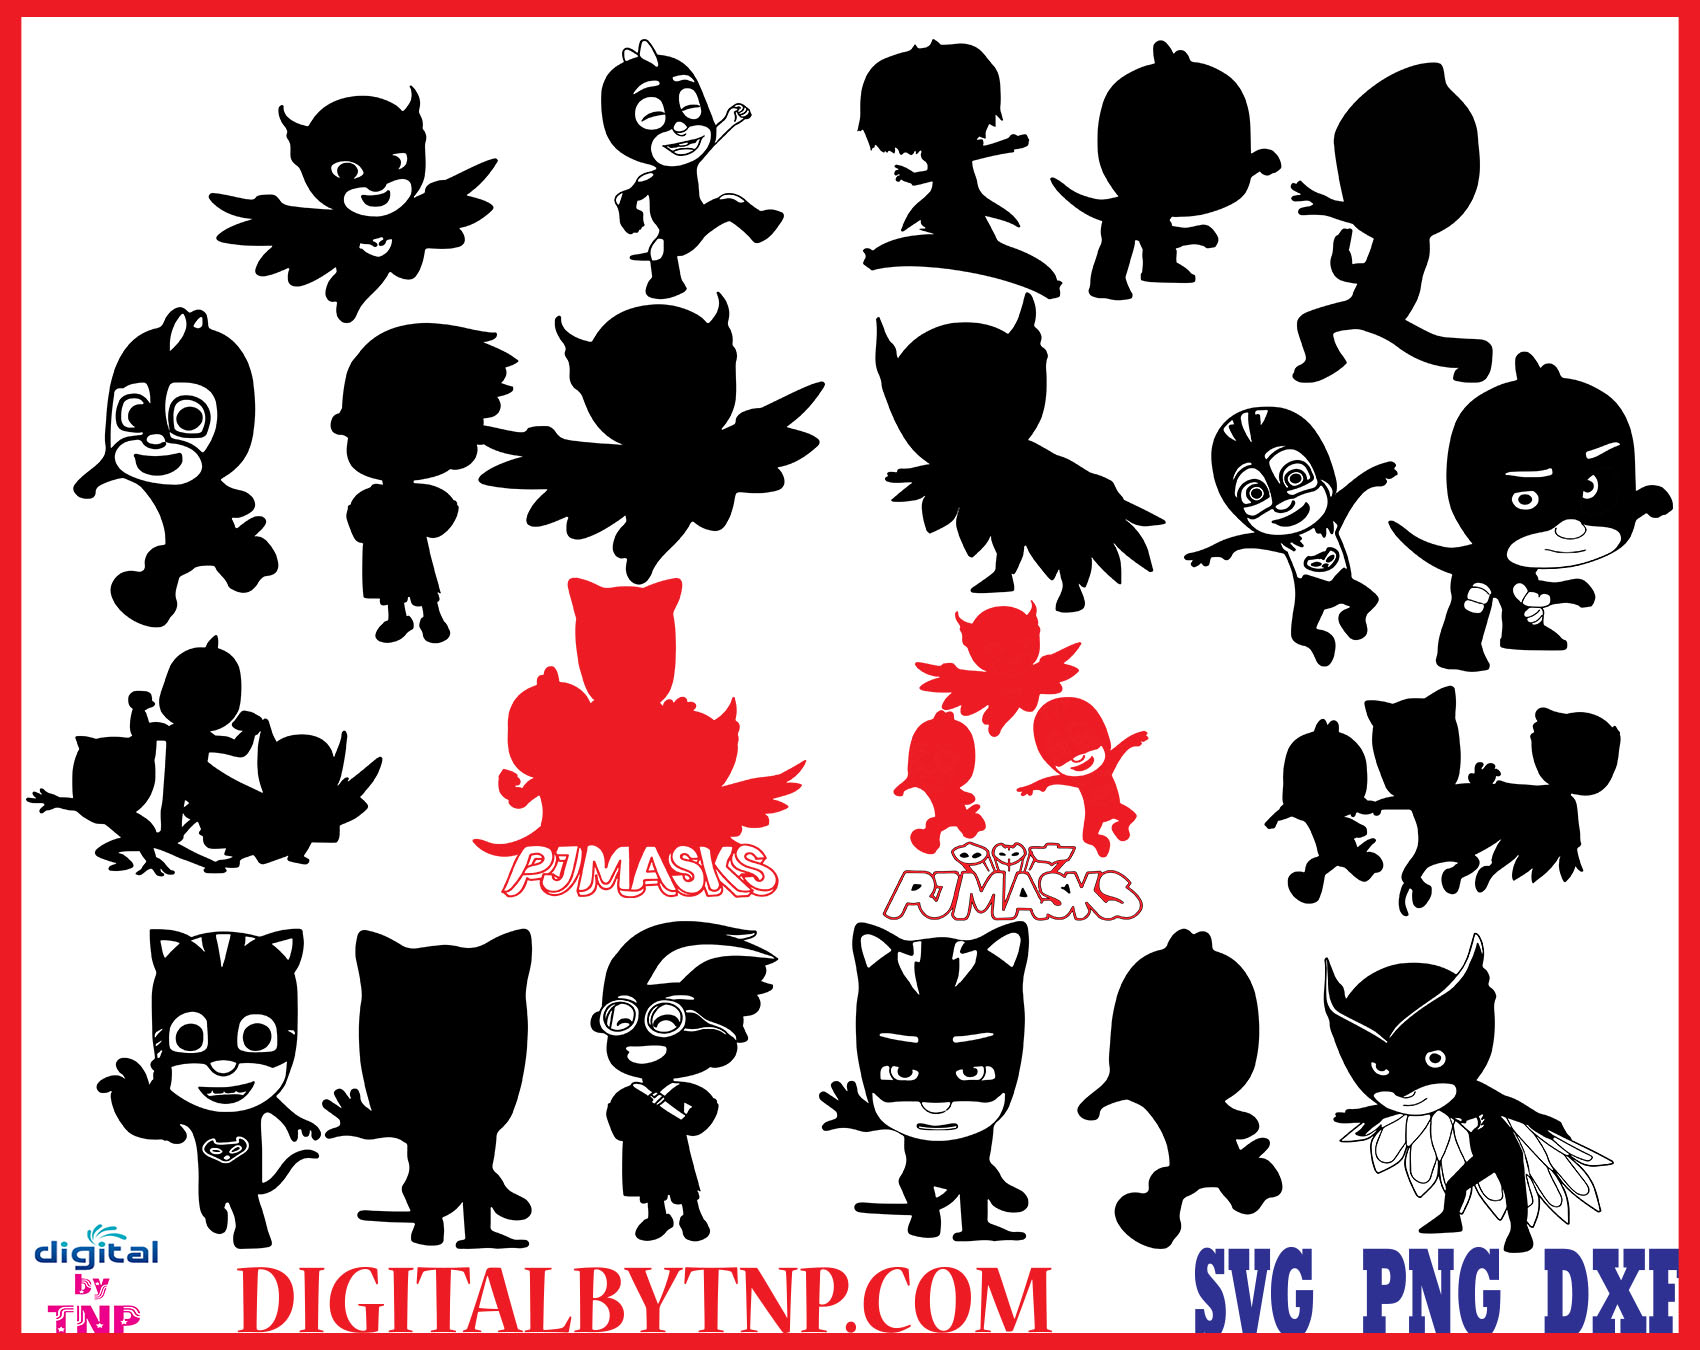 Pj Masks Clipart Pj Masks Svg Png Eps Pj Masks Silhouette Pj Masks Characters Gekko Catboy Owlette Lunetta Night Ninja Romeo Copy Customer Satisfaction Is Our Priority